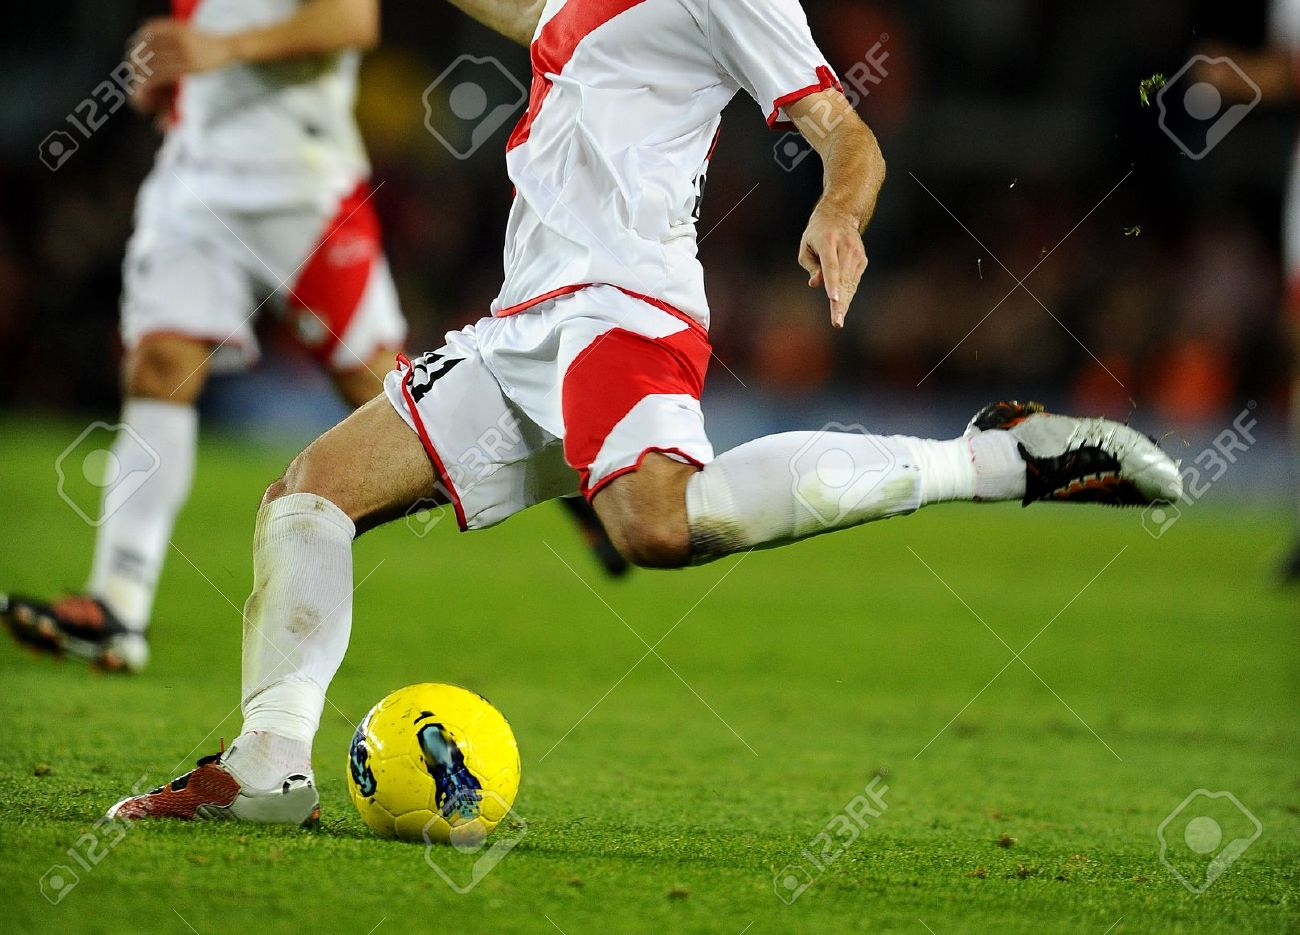 Soccer player legs in action Stock Photo - 14080704